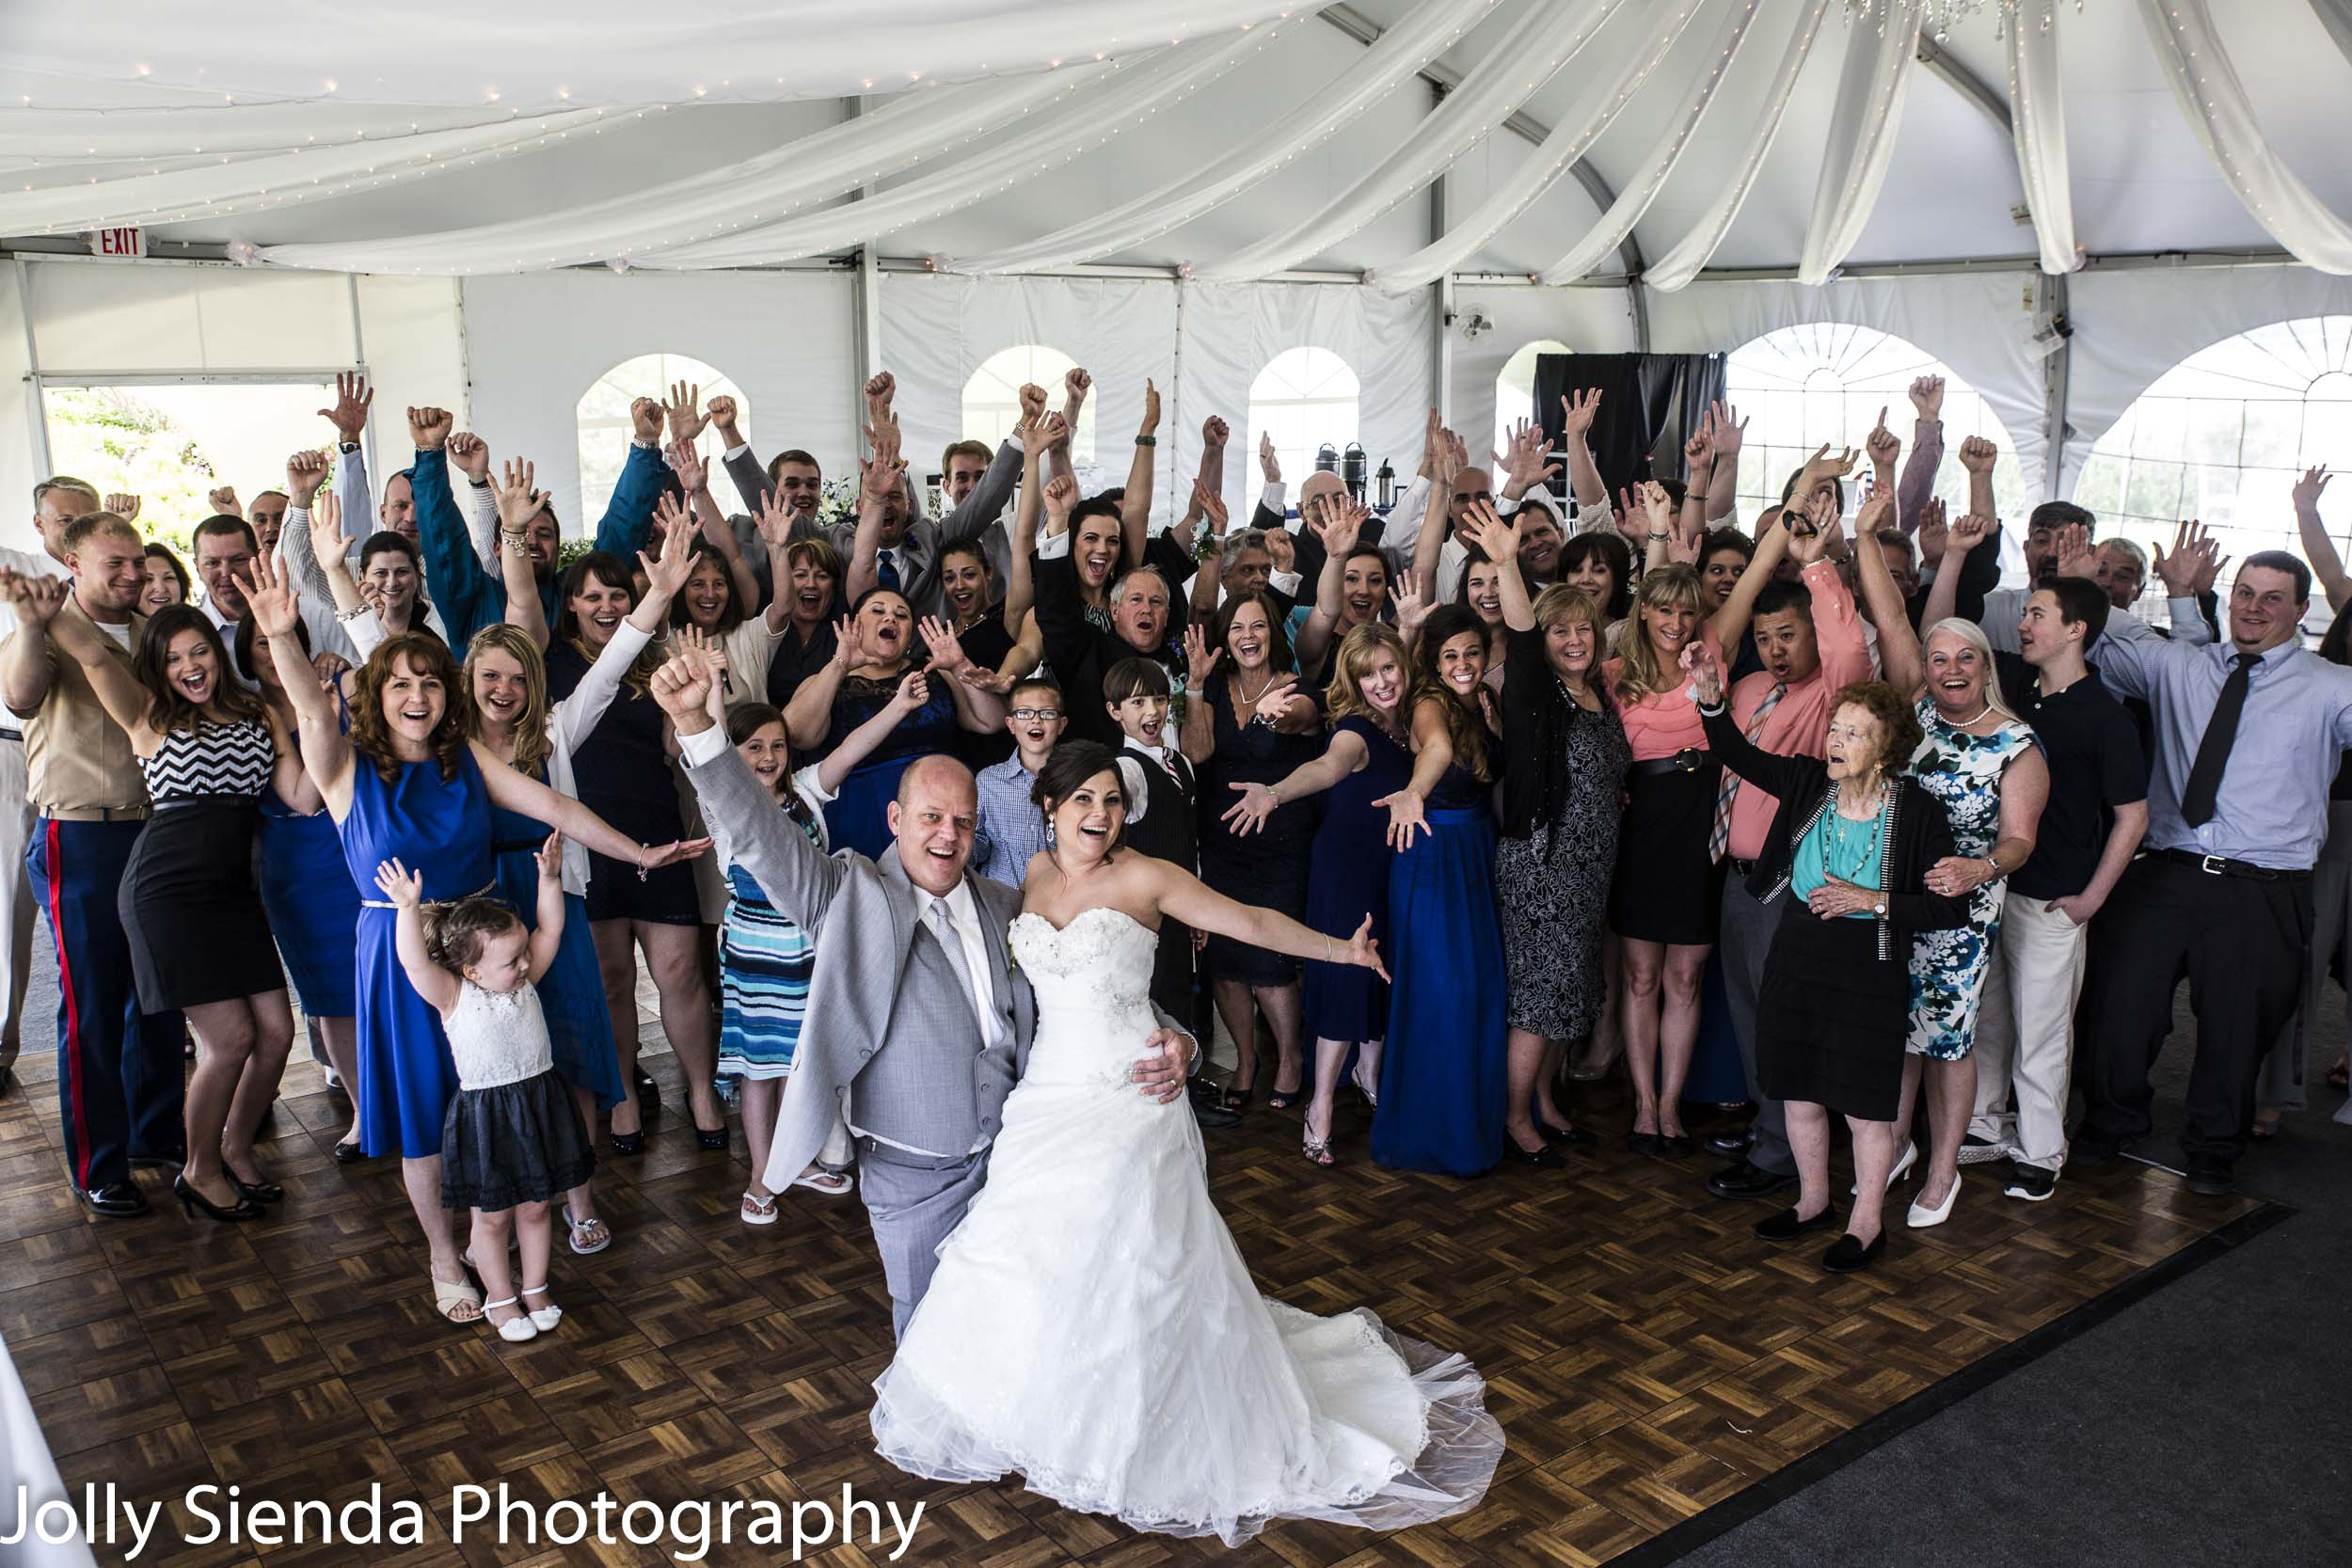 Wedding reception with large group, under a pavilion, with an aerial photograph of the bride, groom, and their guests.